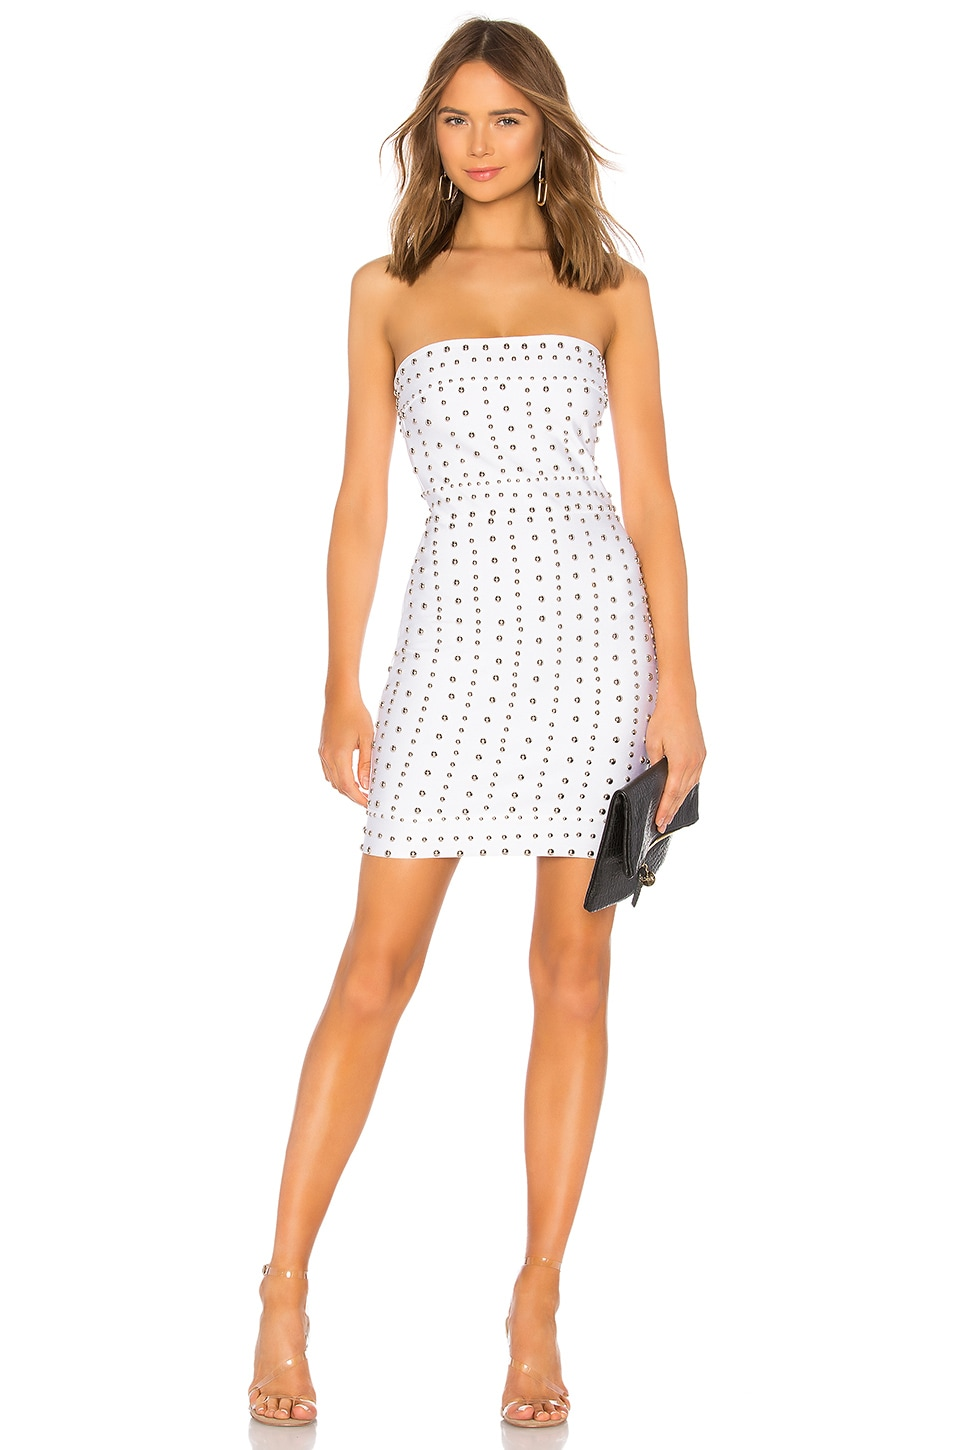 BLAKE STUDDED BANDAGE DRESS